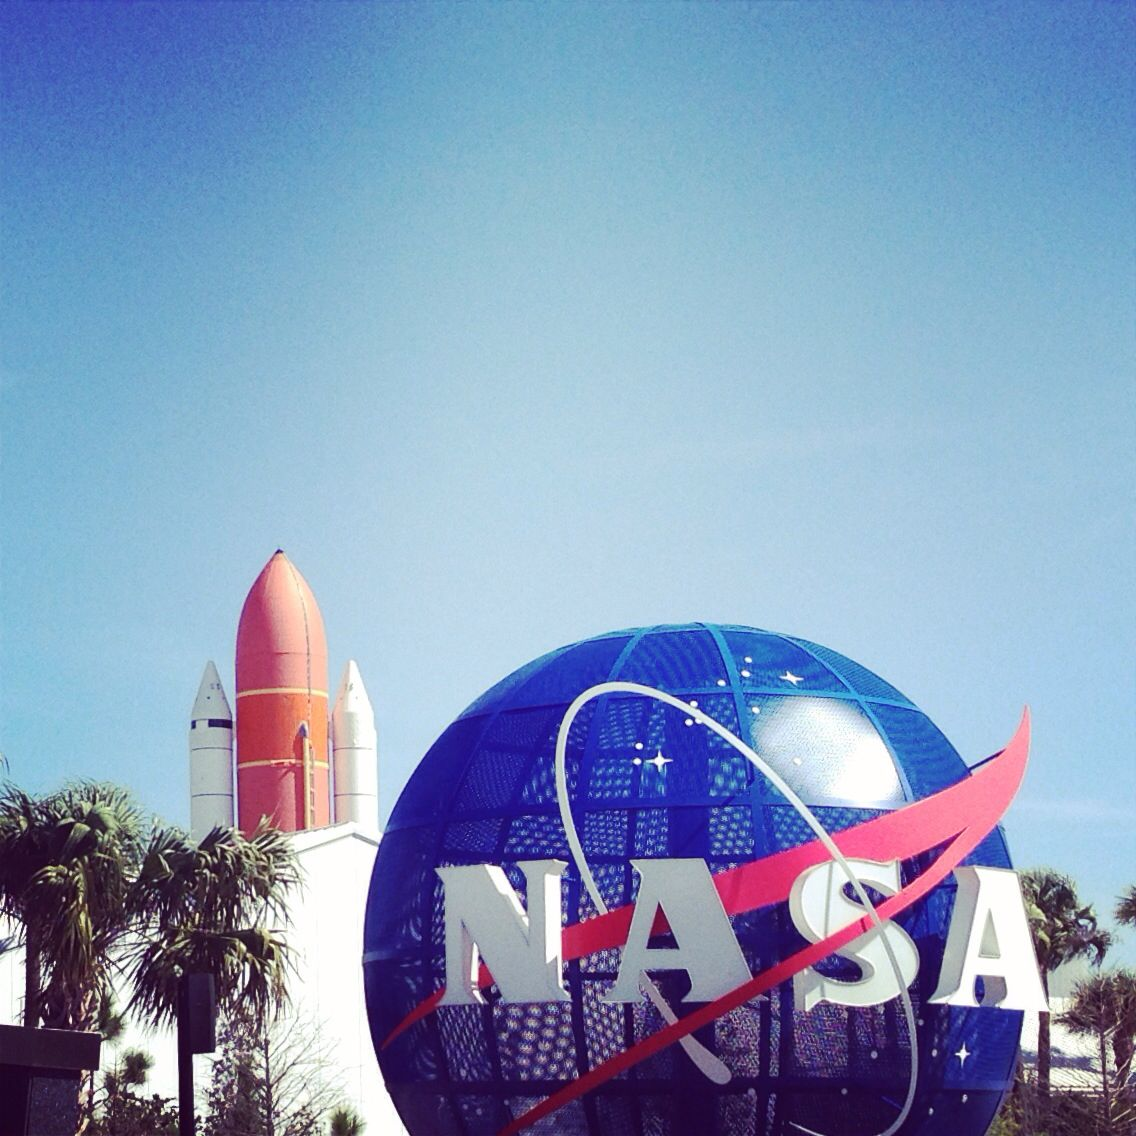 Kennedy Space Center visitors center Summer travel